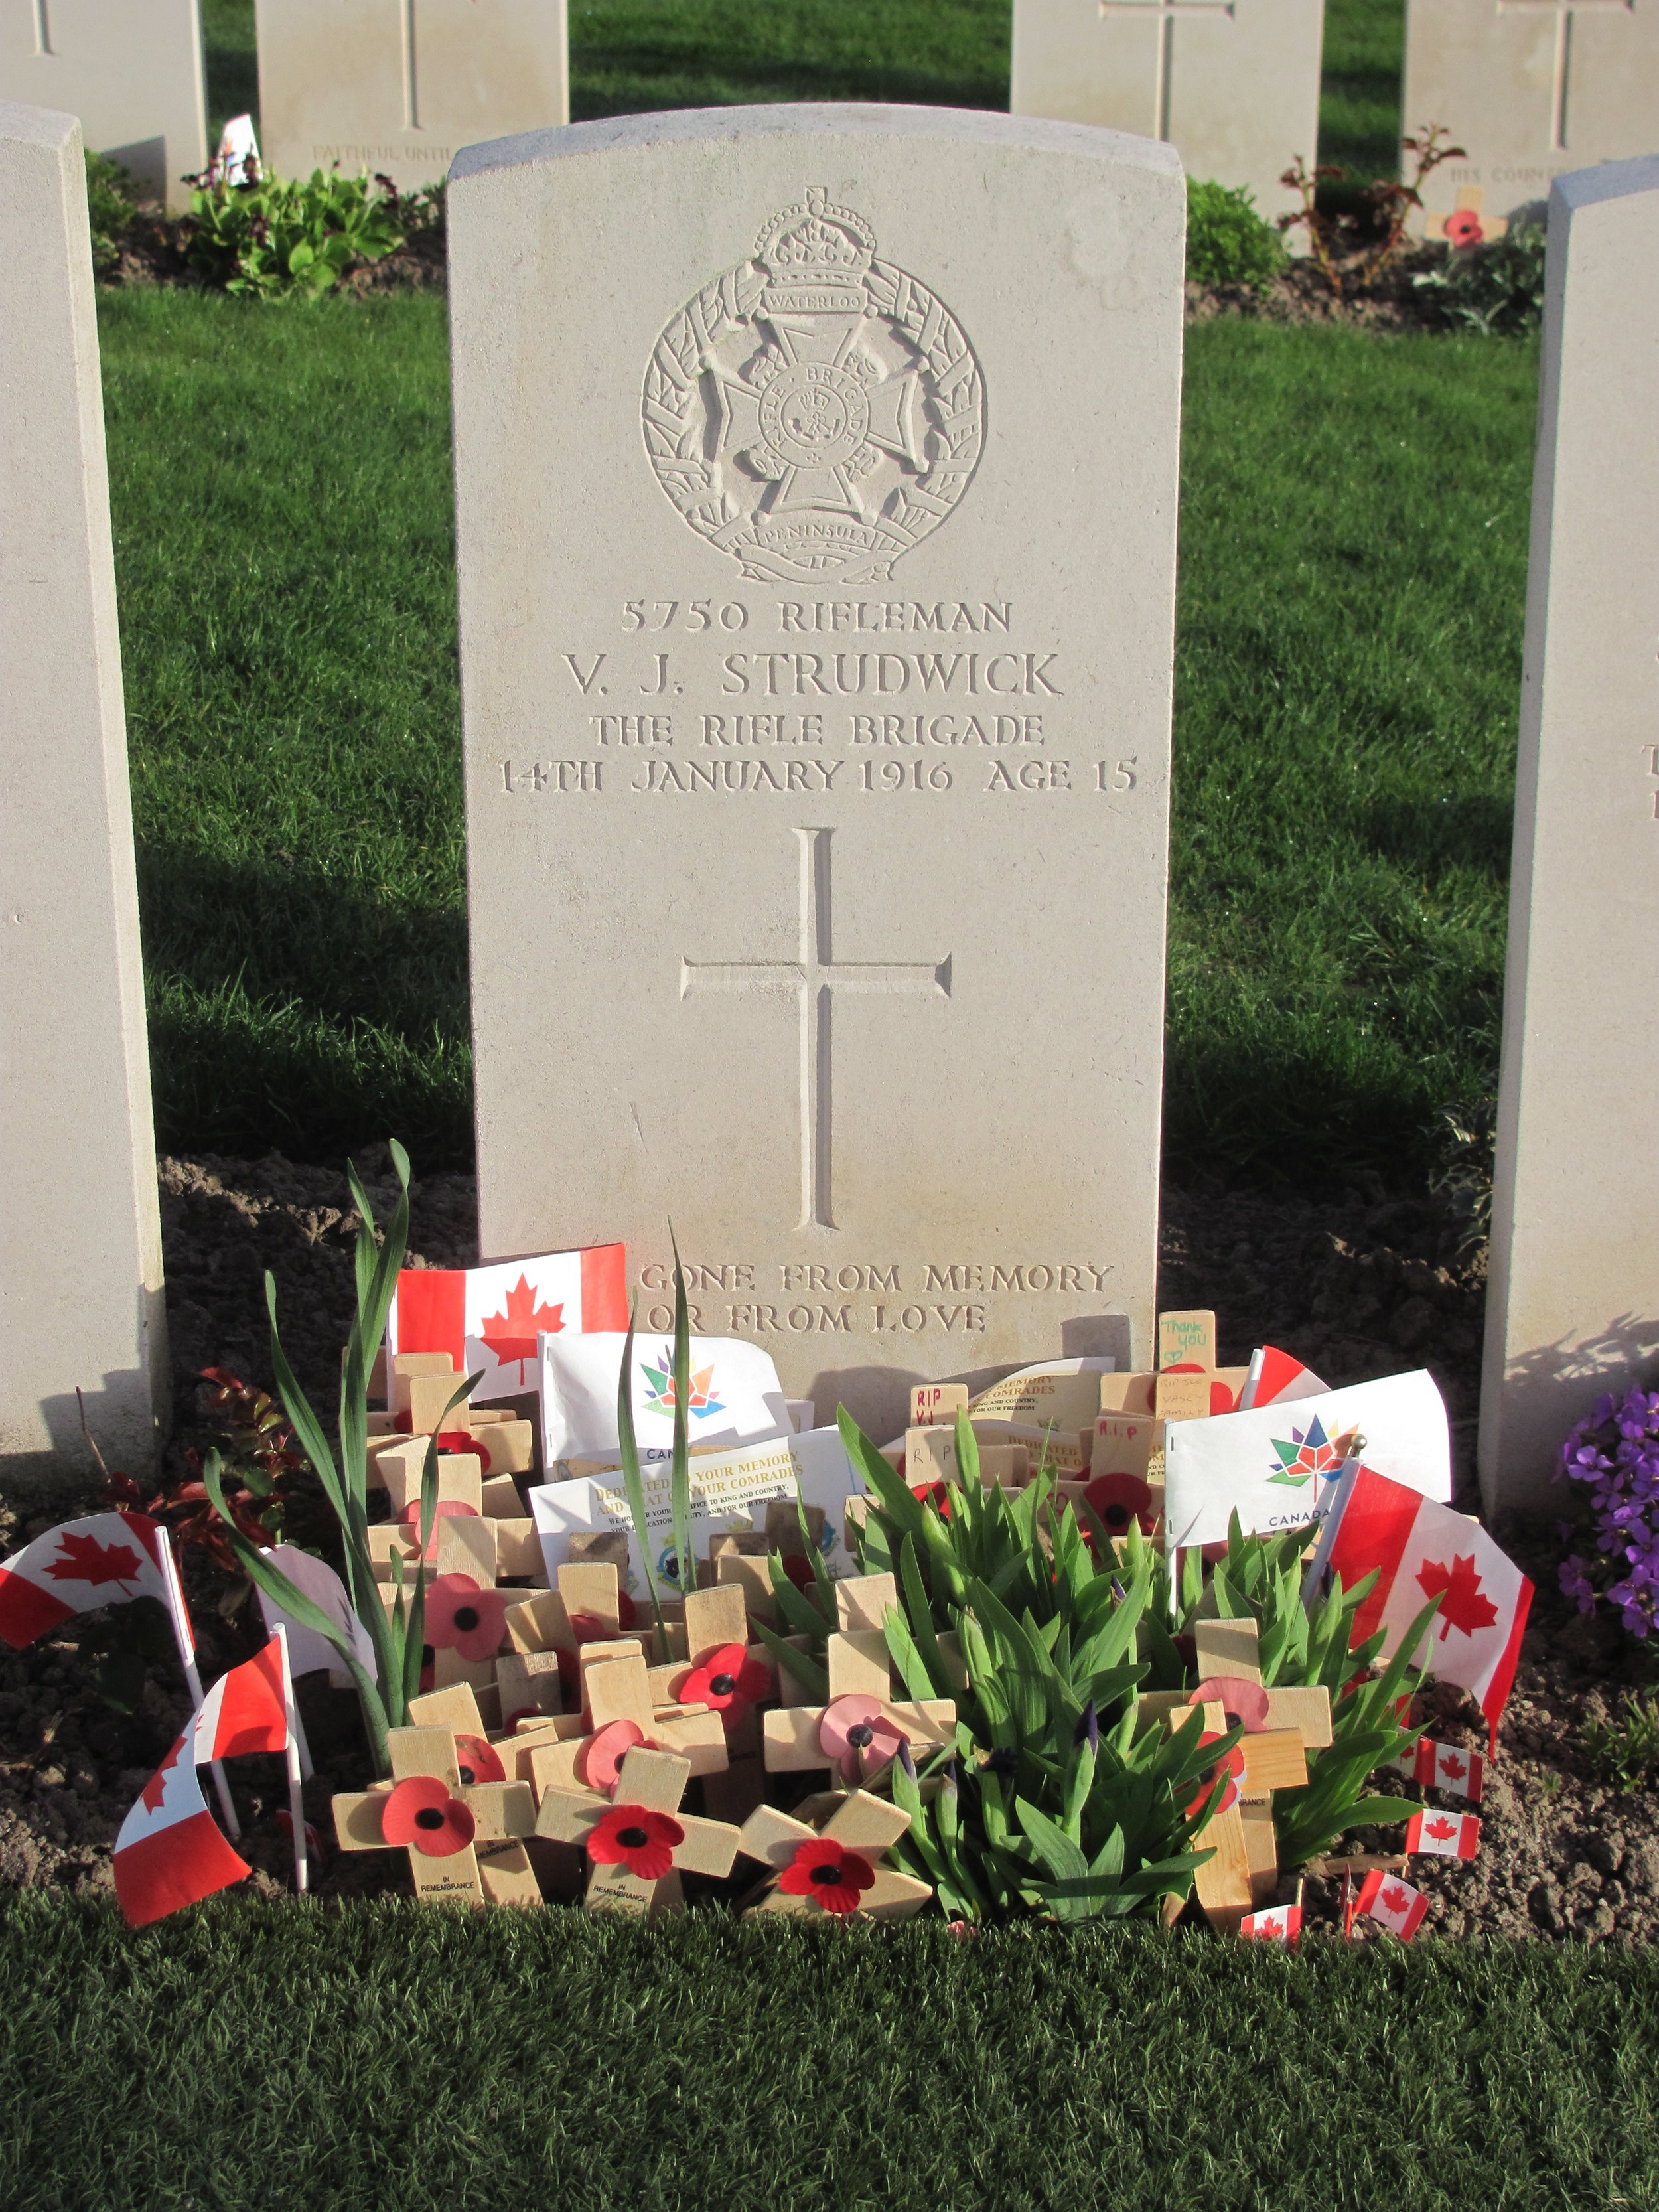 Much visited, the grave of V. J. Strudwick, British soldier at Essex Farm Cemetery, required astro turf to replace grass, due to foot traffic.